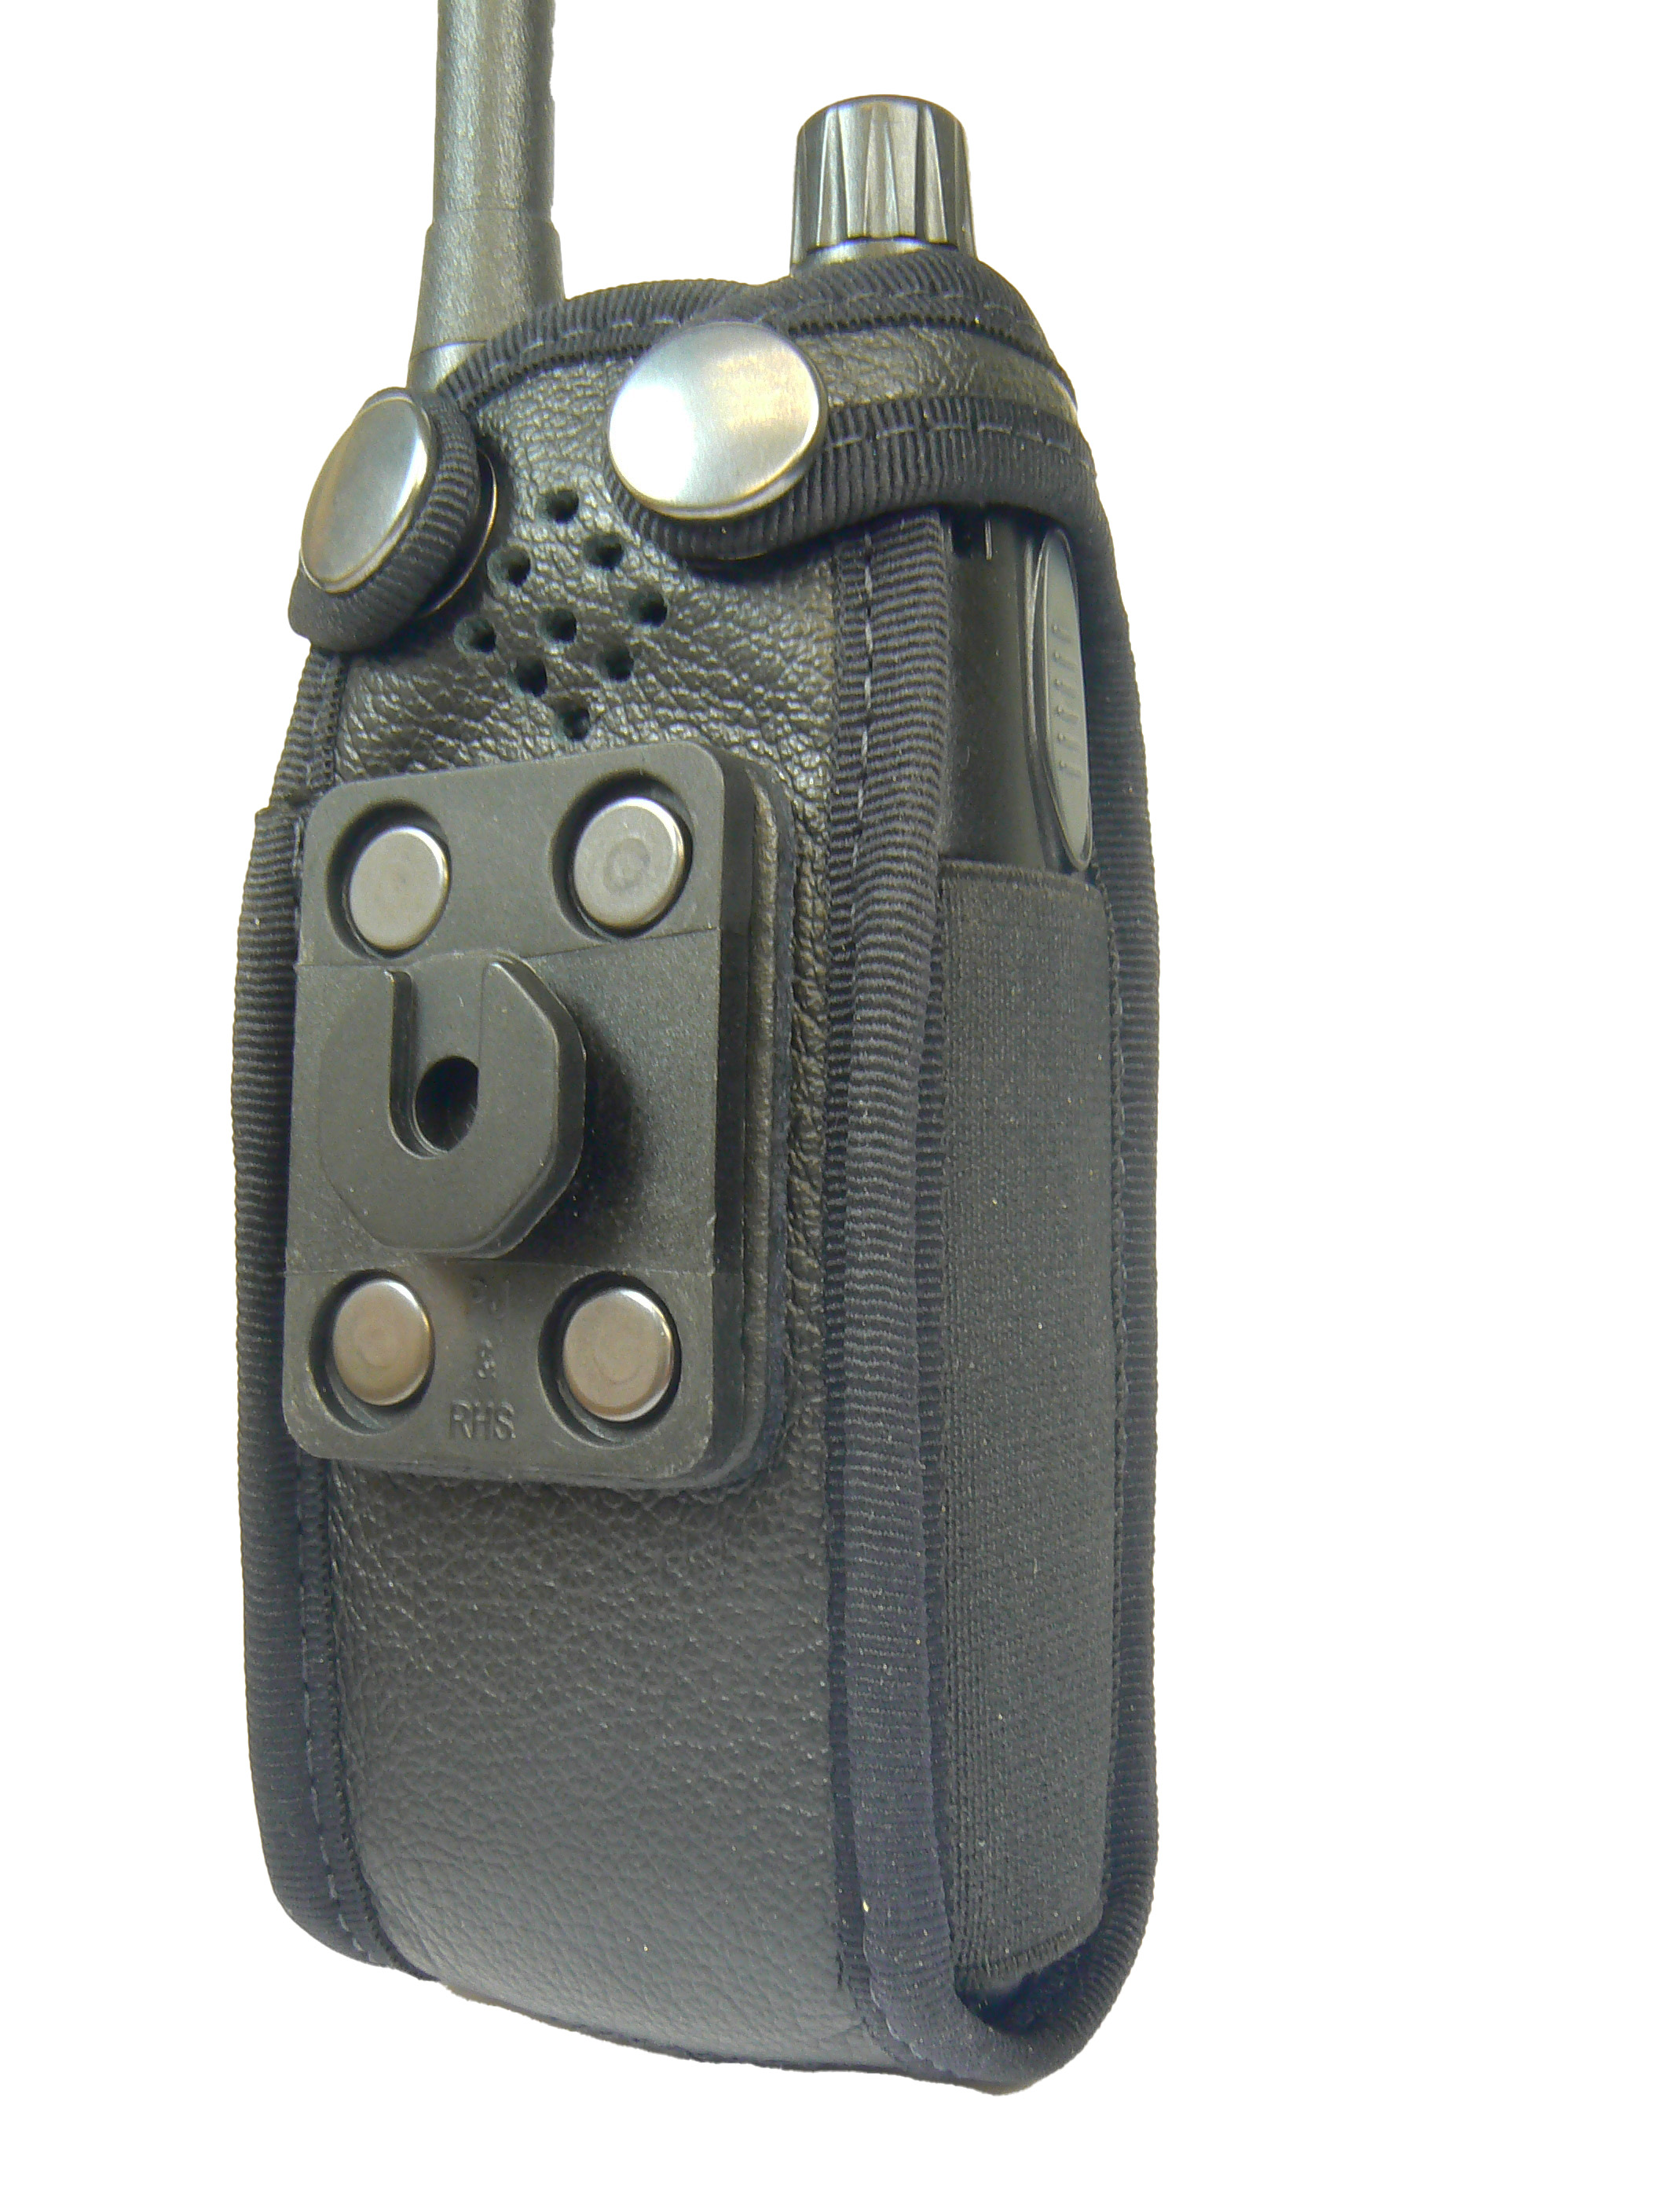 Sepura SRP2000 Tetra leather radio case with Click-On